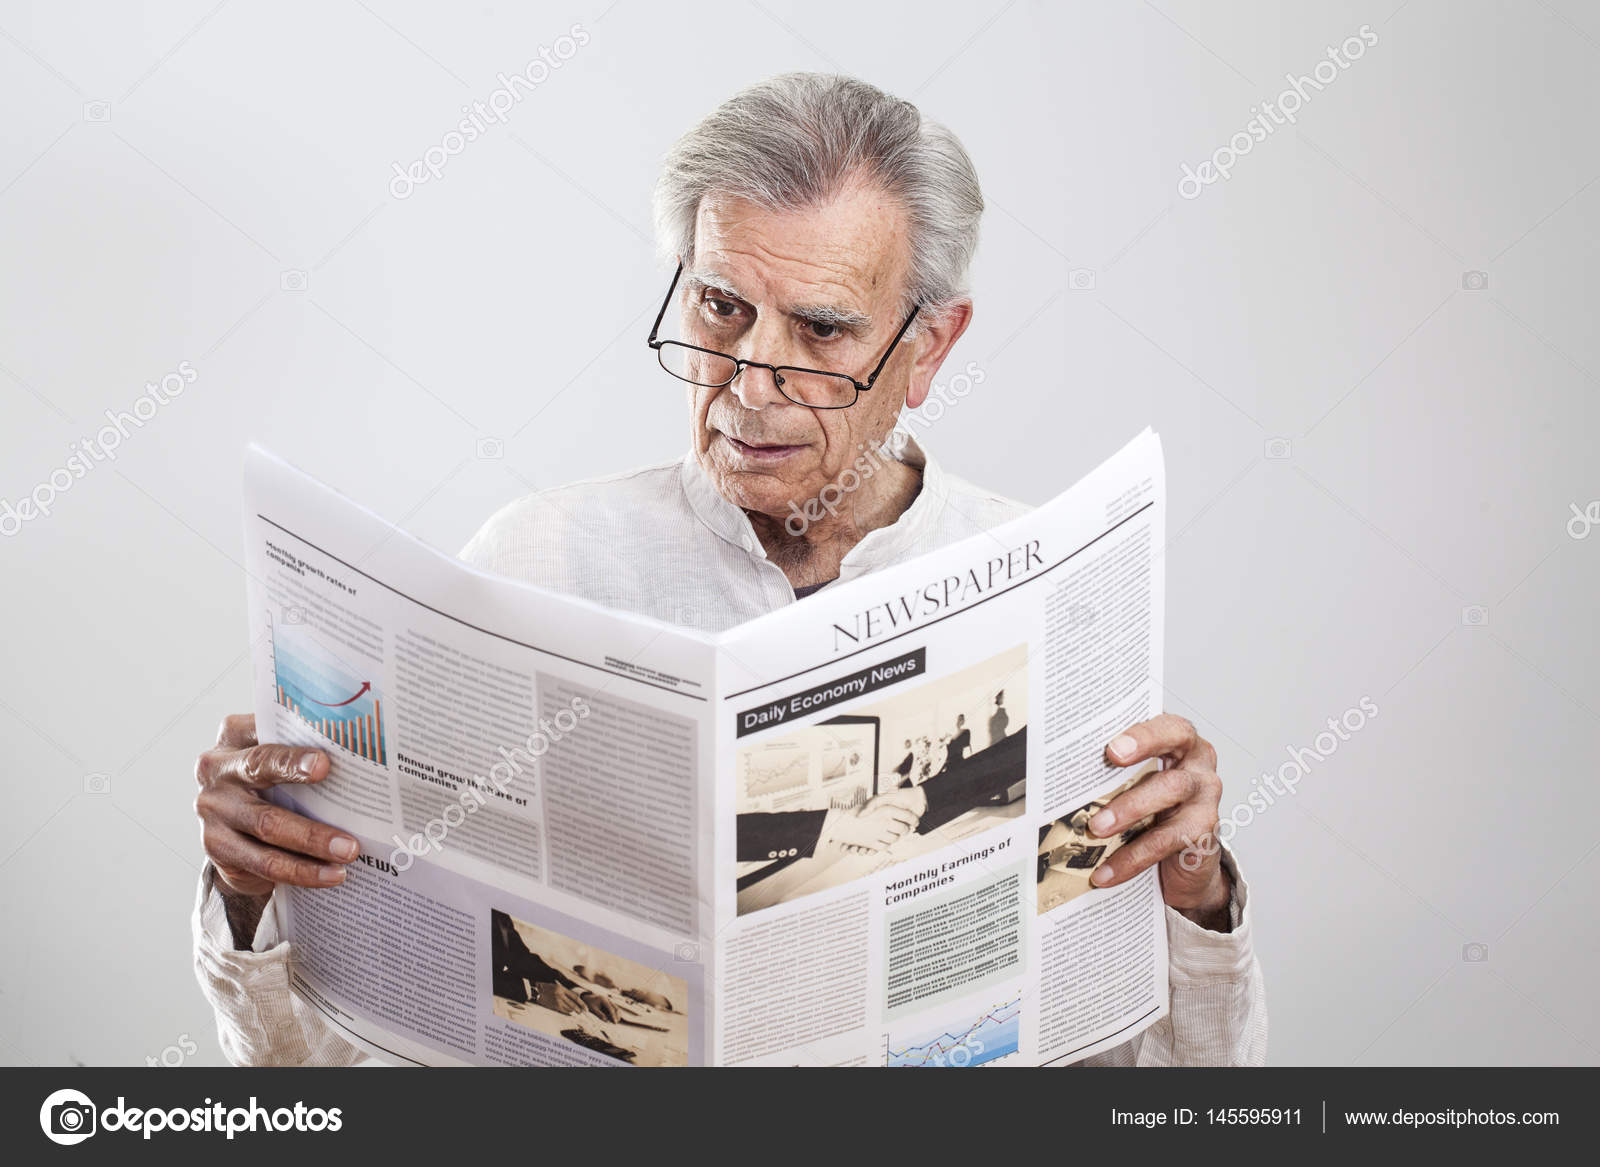 portrait elderly man reading newspaper — stock photo © seb_ra #145595911